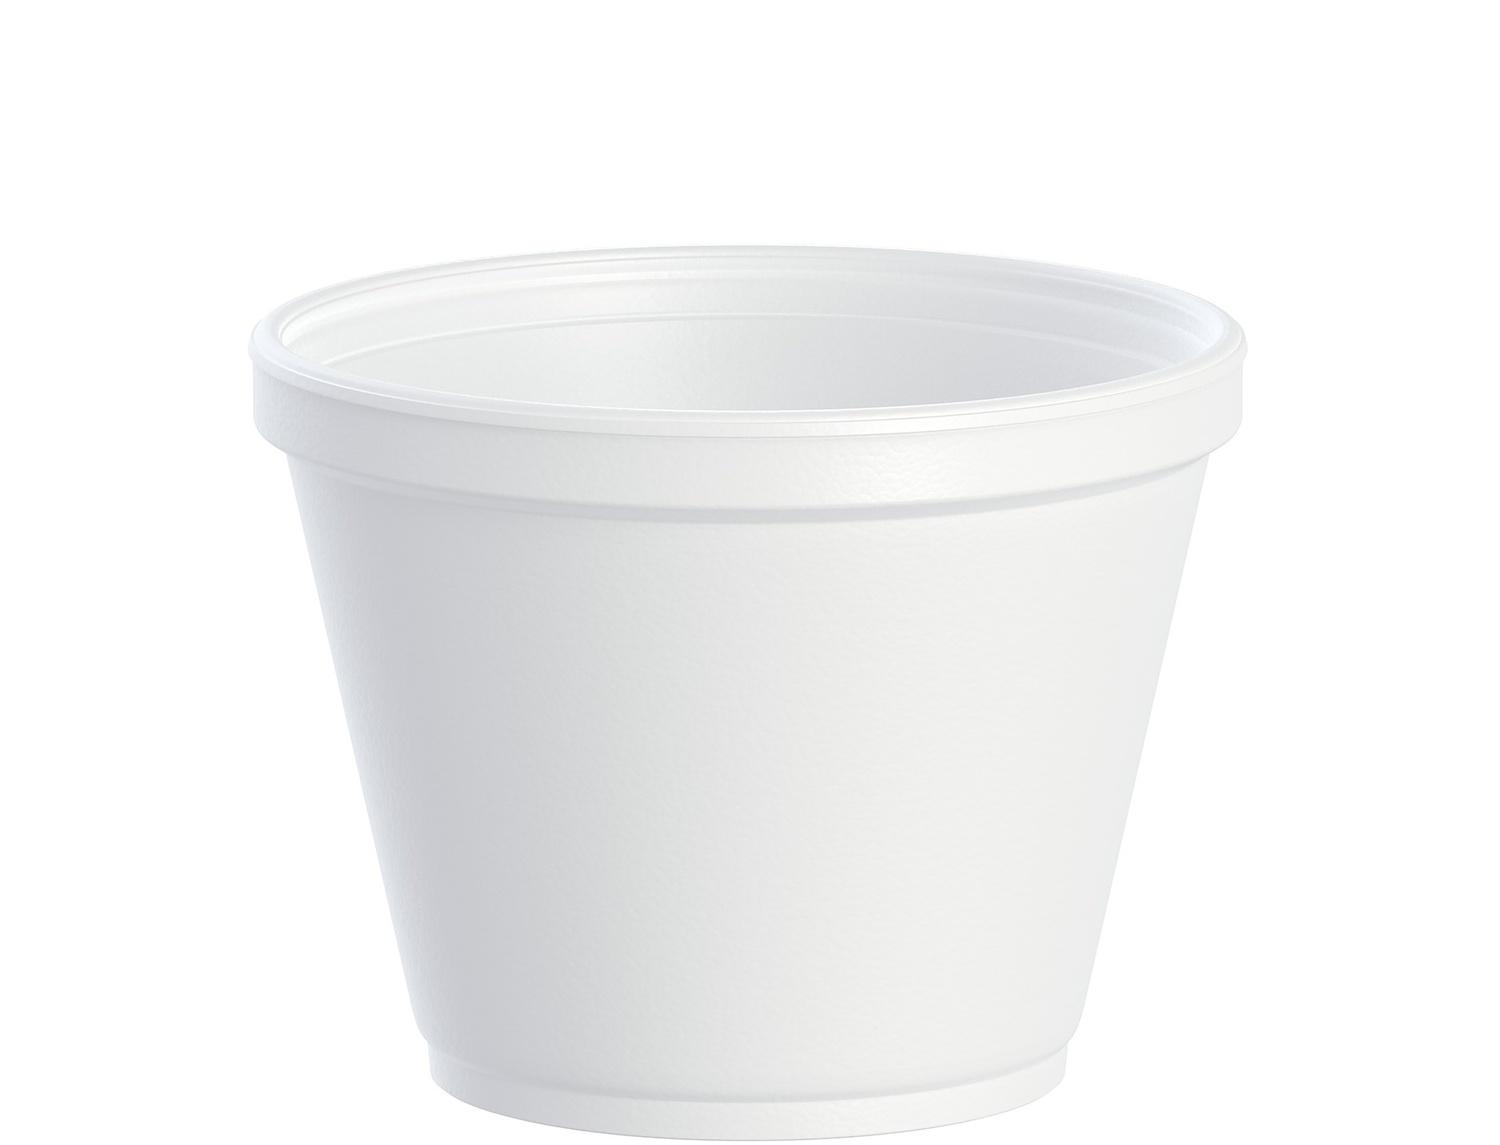 image of Container Foam Round White Squat 12 oz